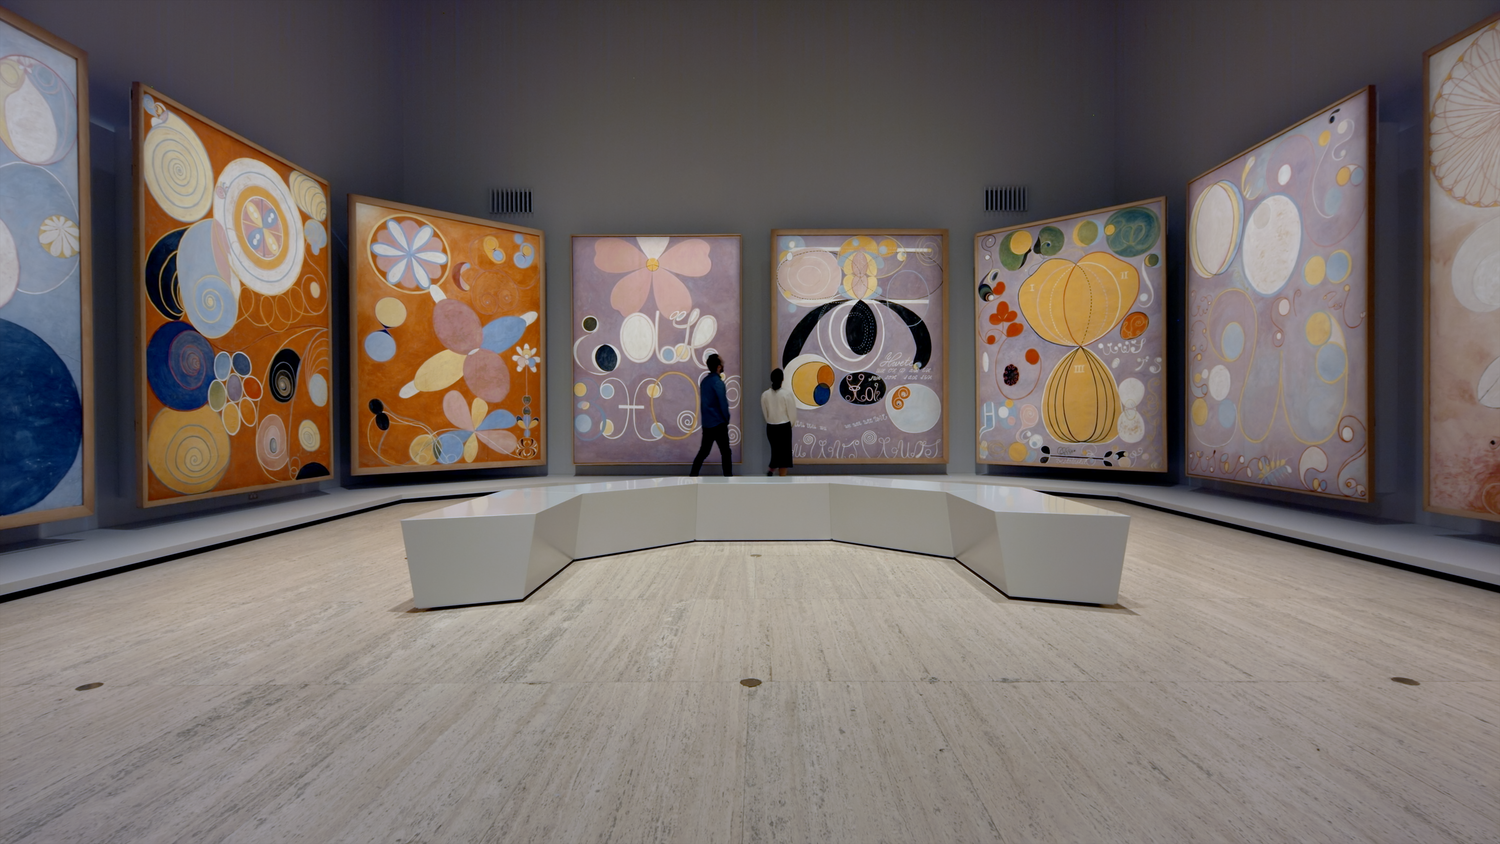 Installation view of the Hilma af Klint exhibition, 'The Secret Paintings'. Photo © AGNSW